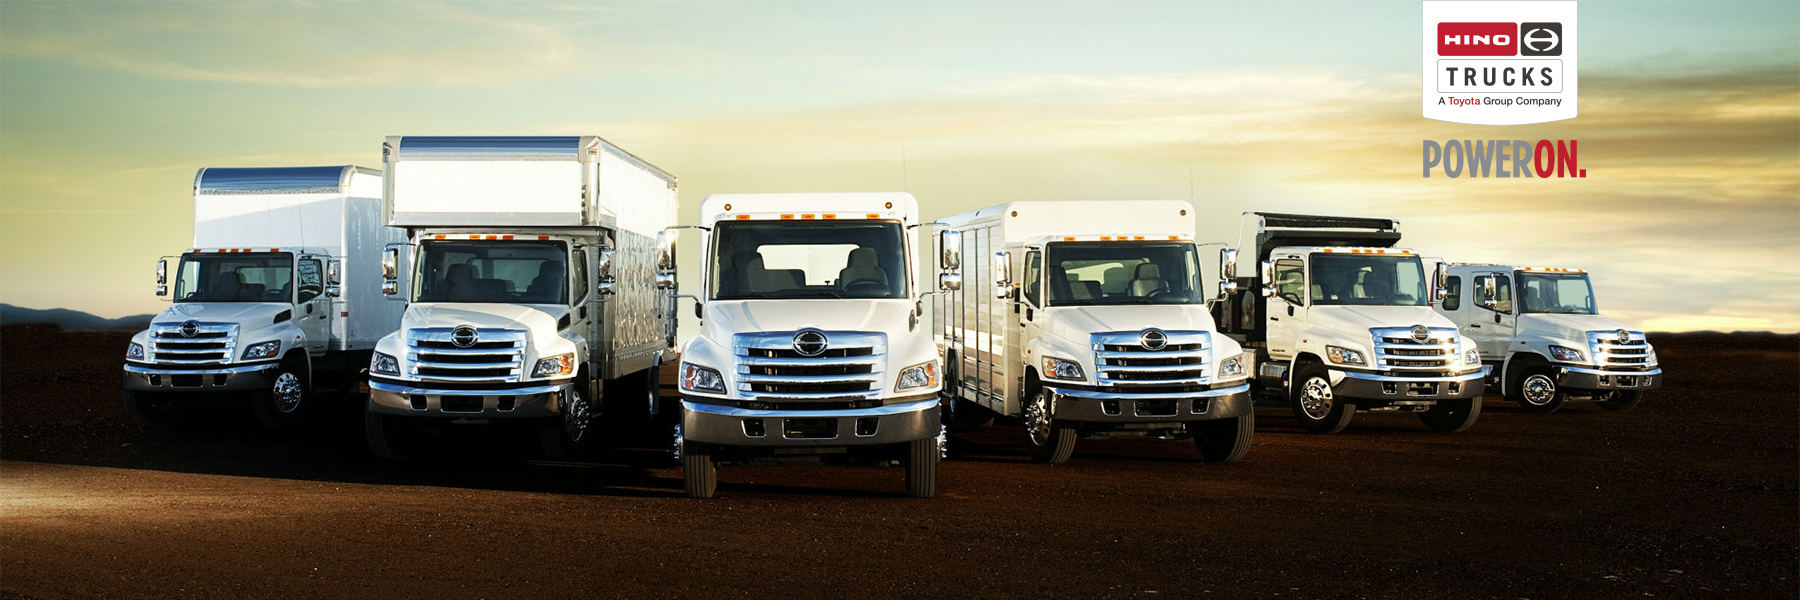 Hino Family of Commercial Trucks photo